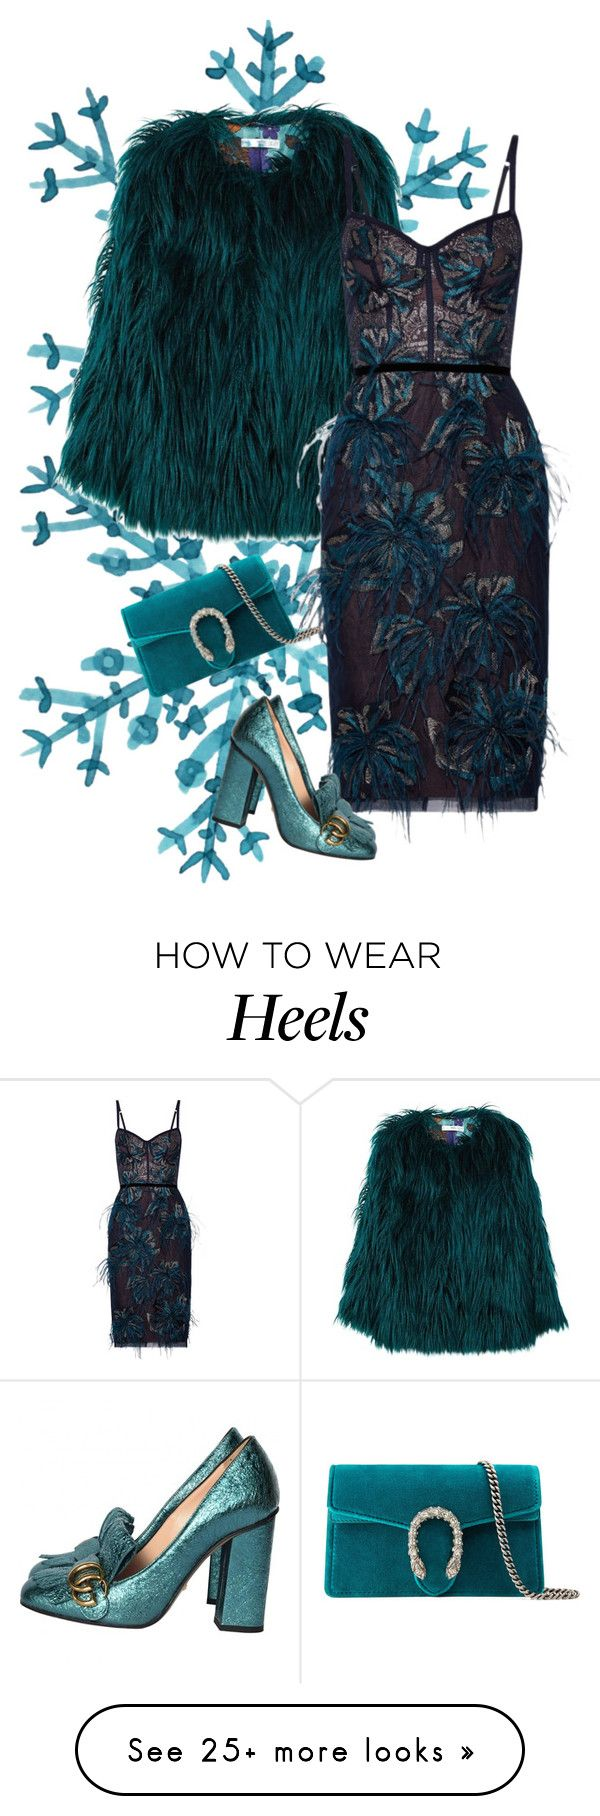 """lady n"" by atijanam on Polyvore featuring MANGO, Notte by Marchesa and Gucci"